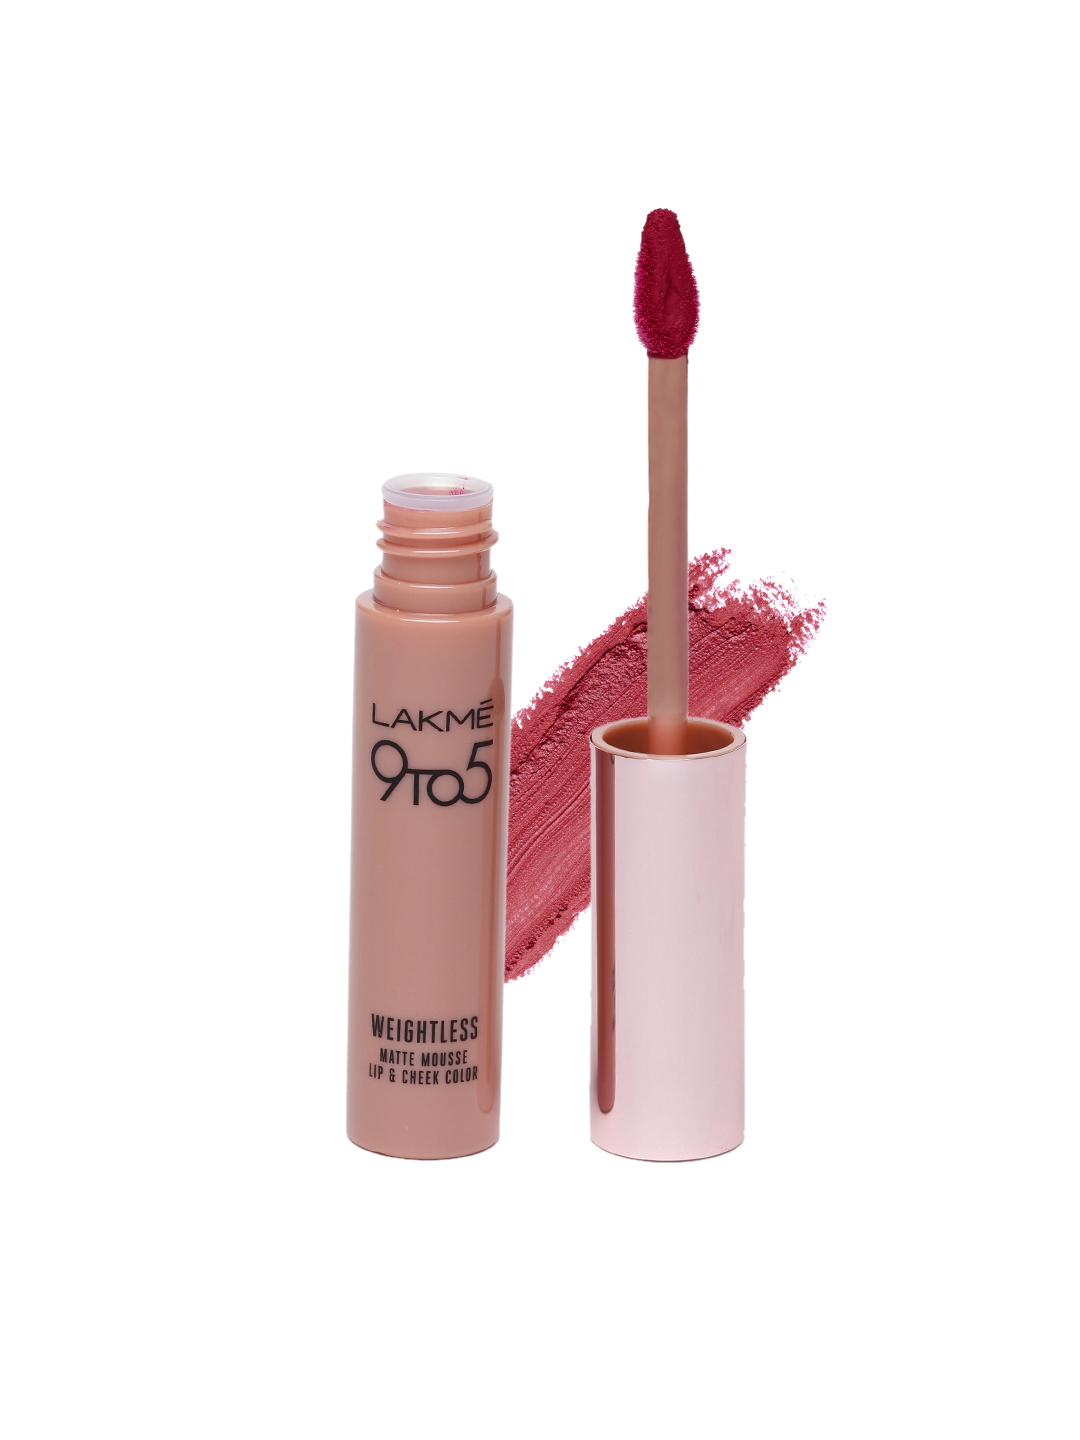 Lakme 9to5 Weightless Matte Mousse Plum Feather Lip & Cheek Color Price in India